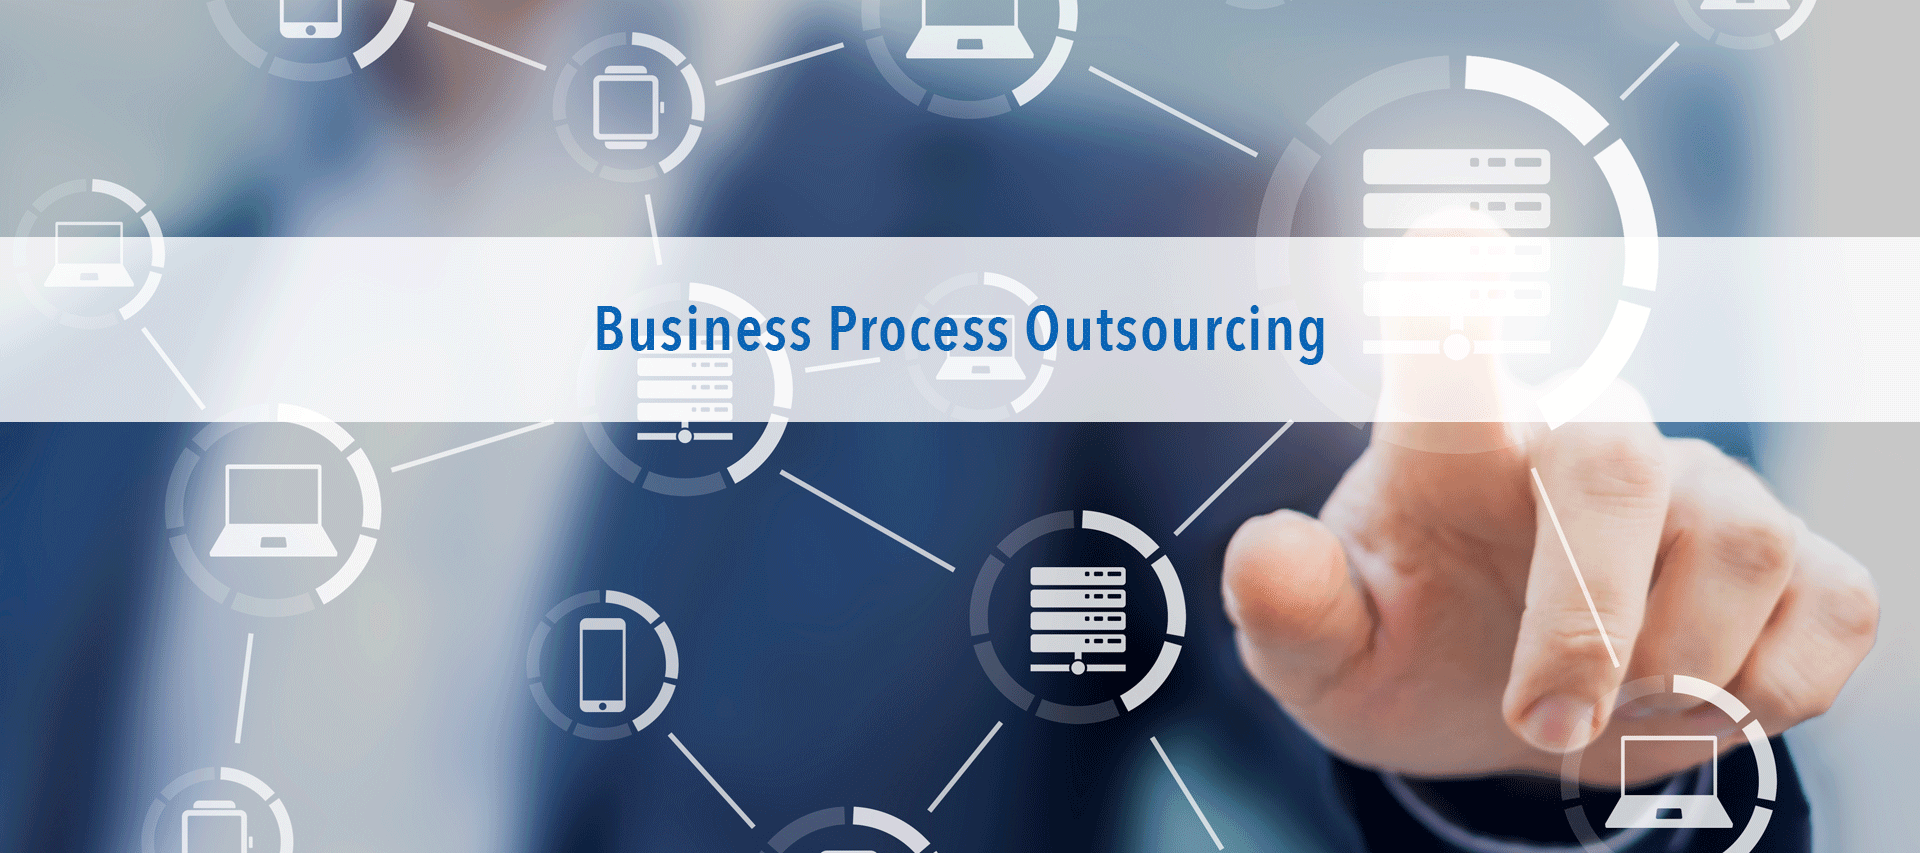 Billing & Payments for Business Process Outsourcing